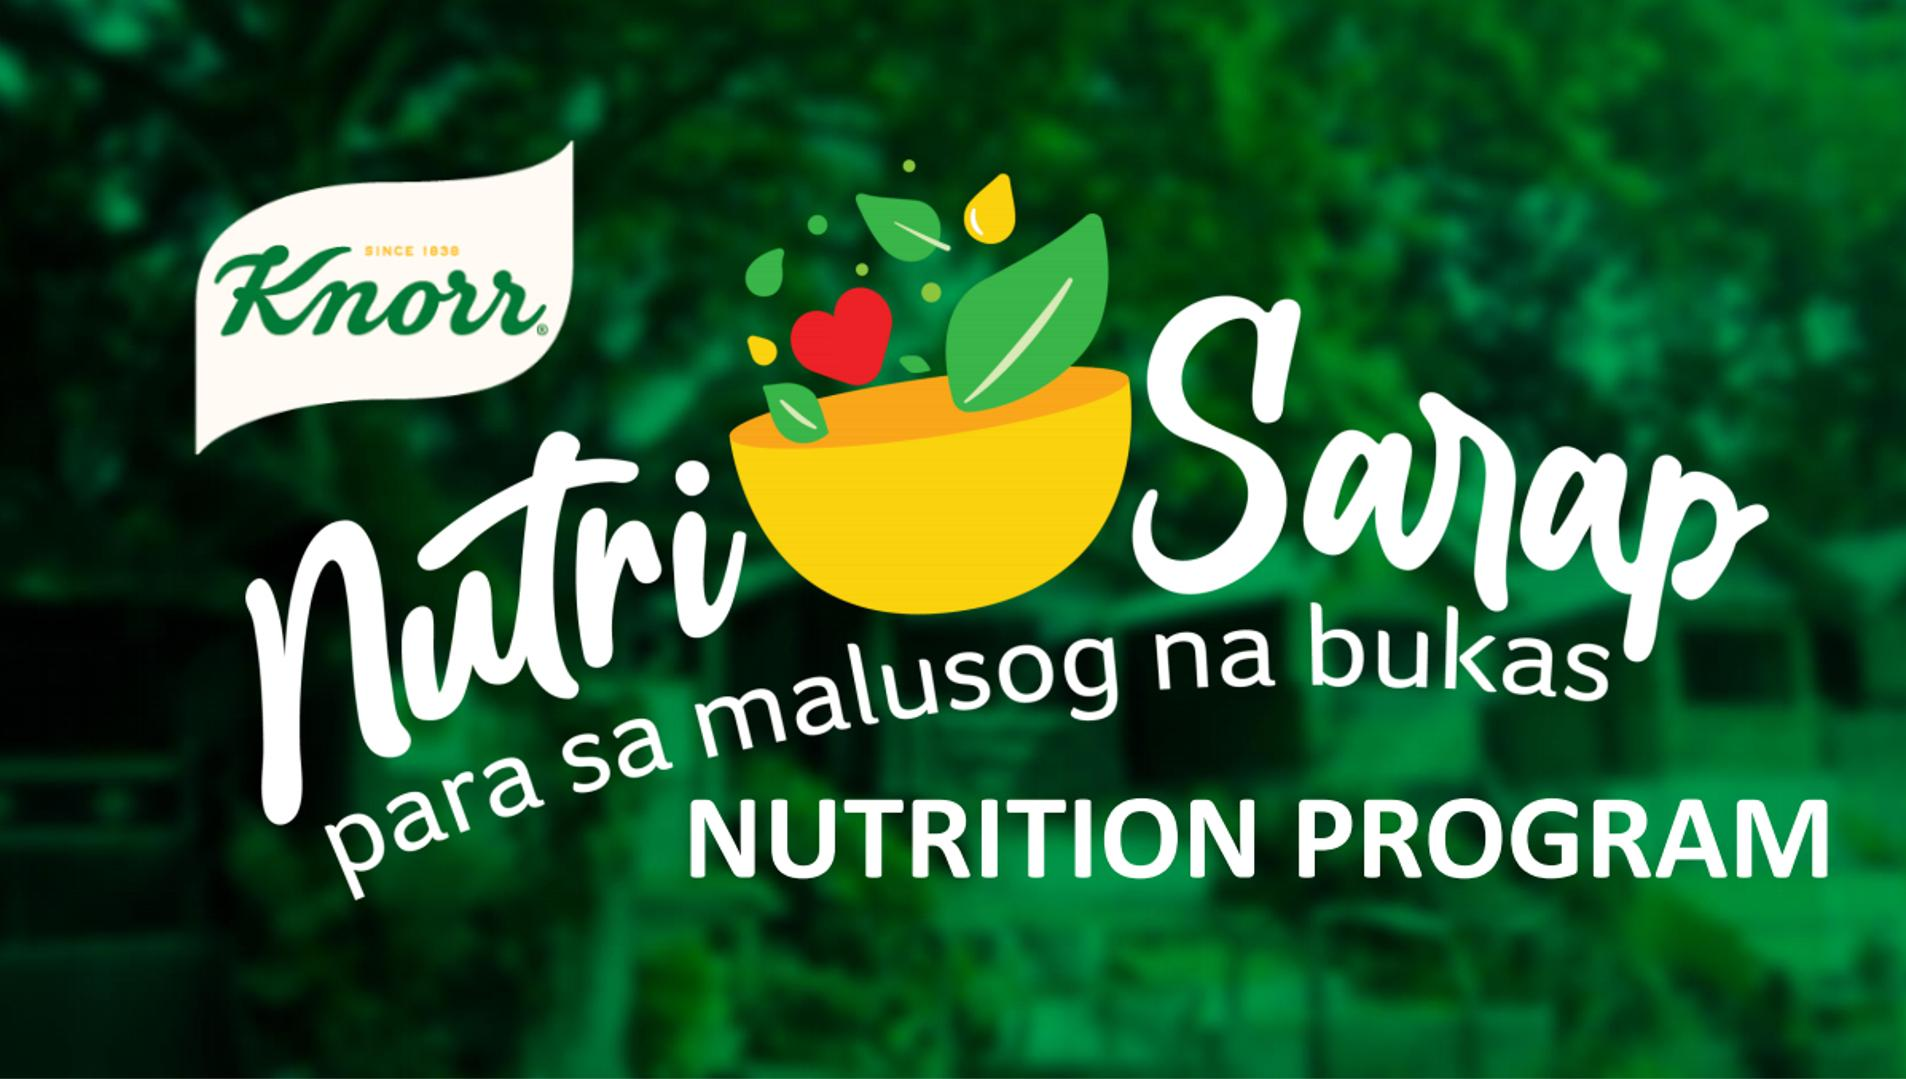 Every family can have access to good nutrition